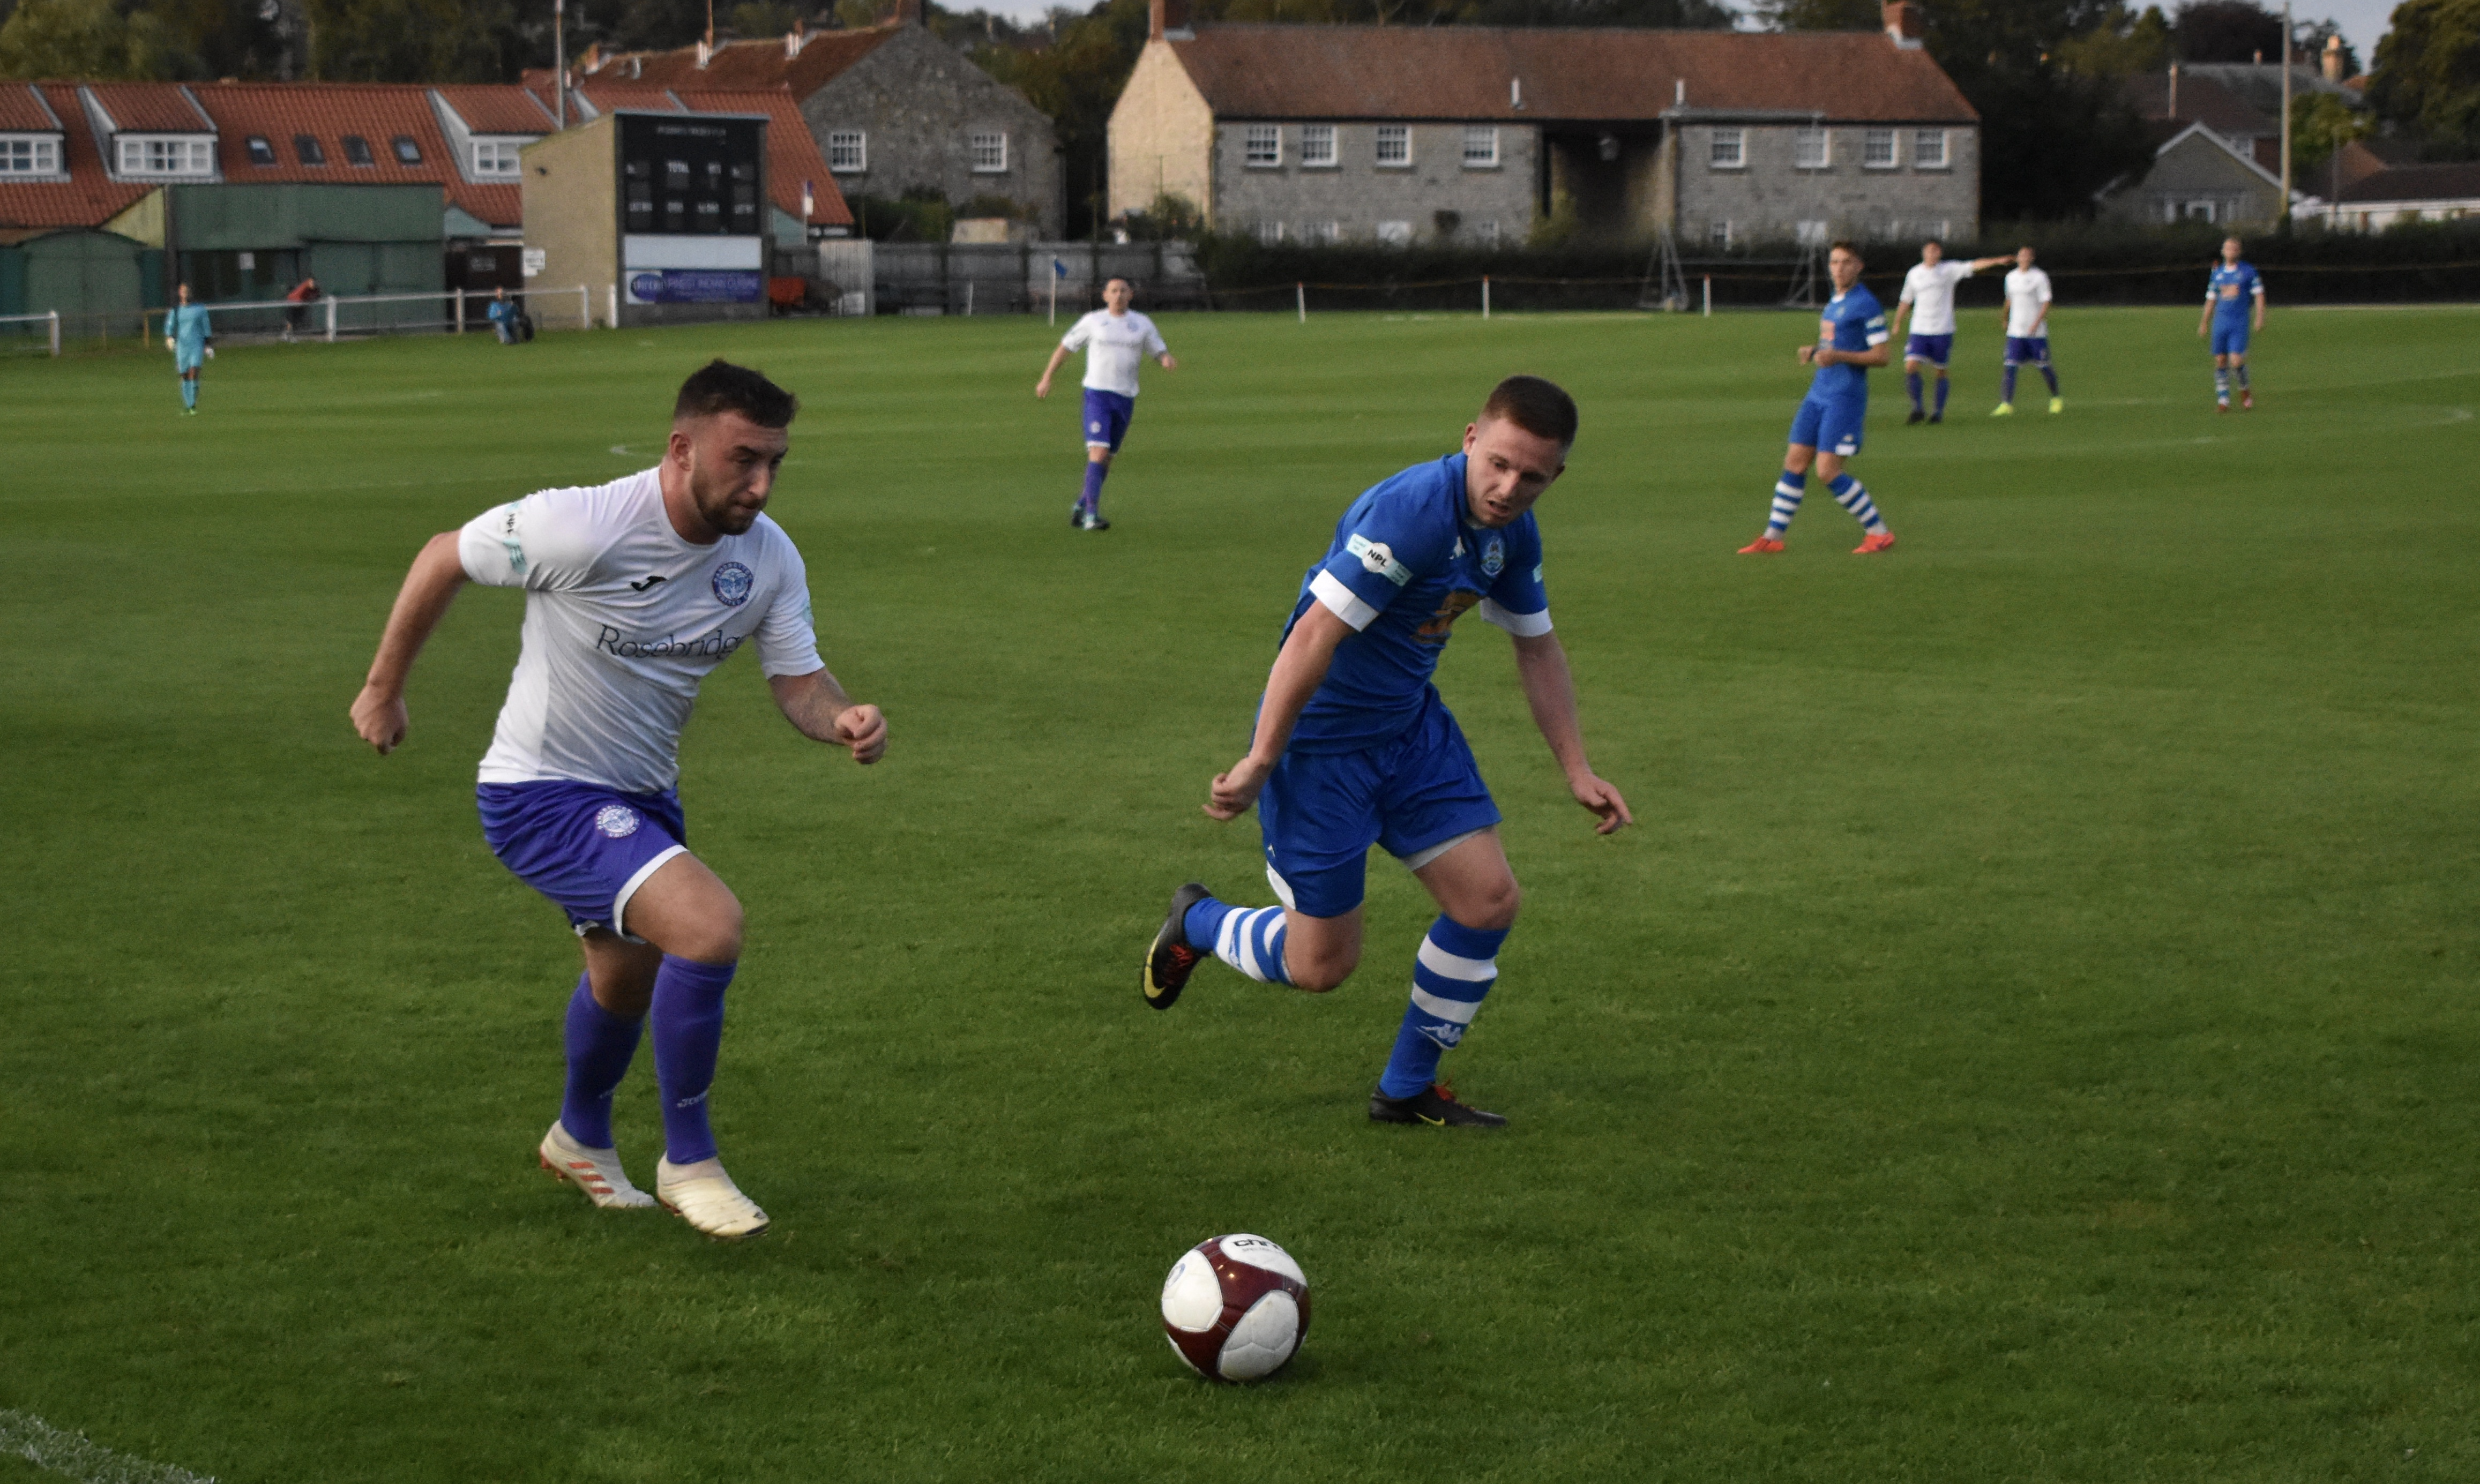 Pickering 1 Rams 2 - Match Action